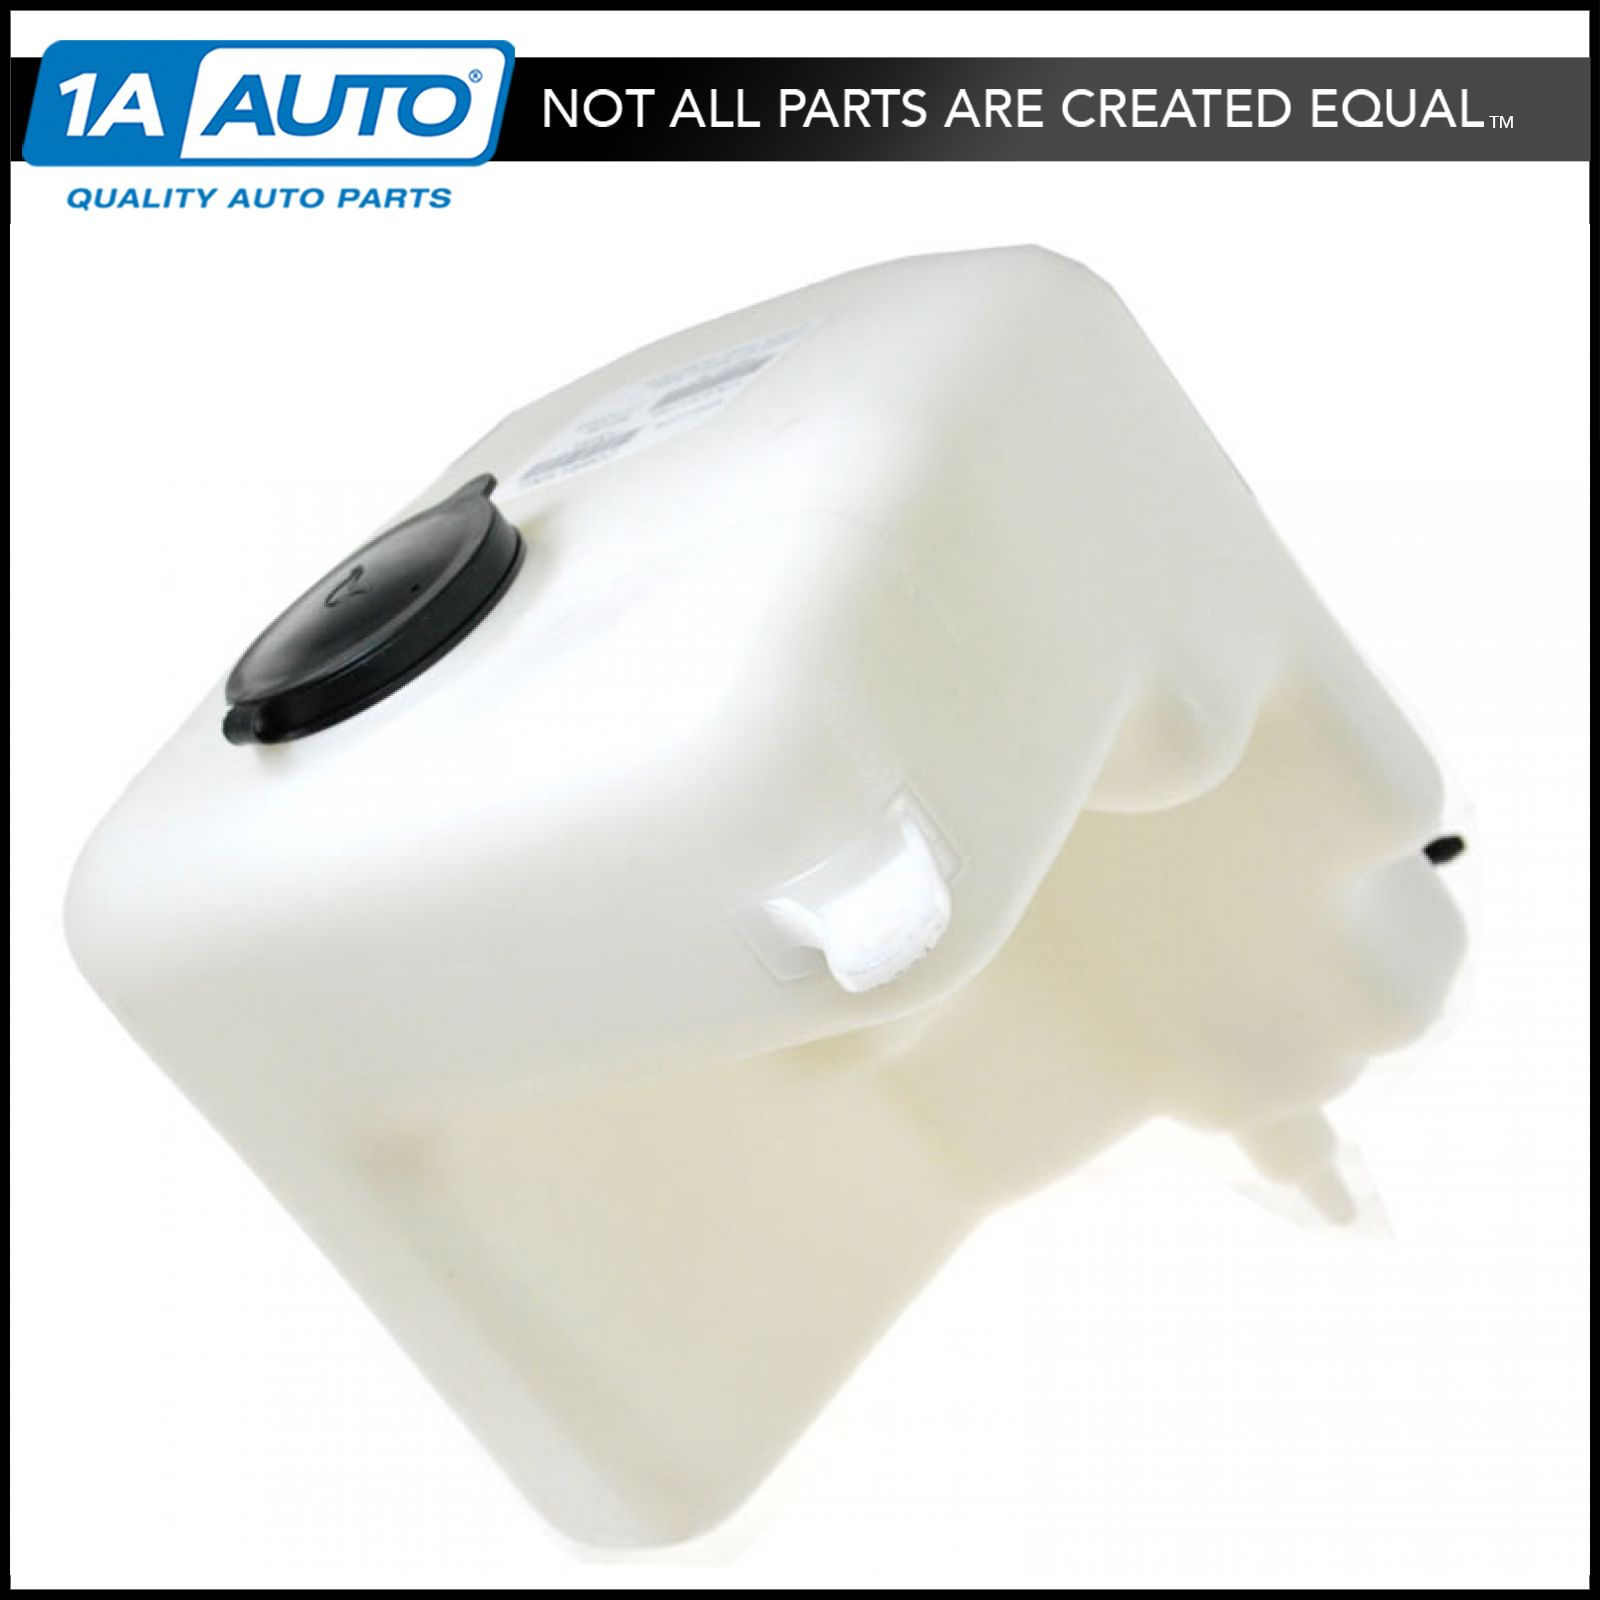 Replacement Washer Reservoir Sedan for Toyota Camry